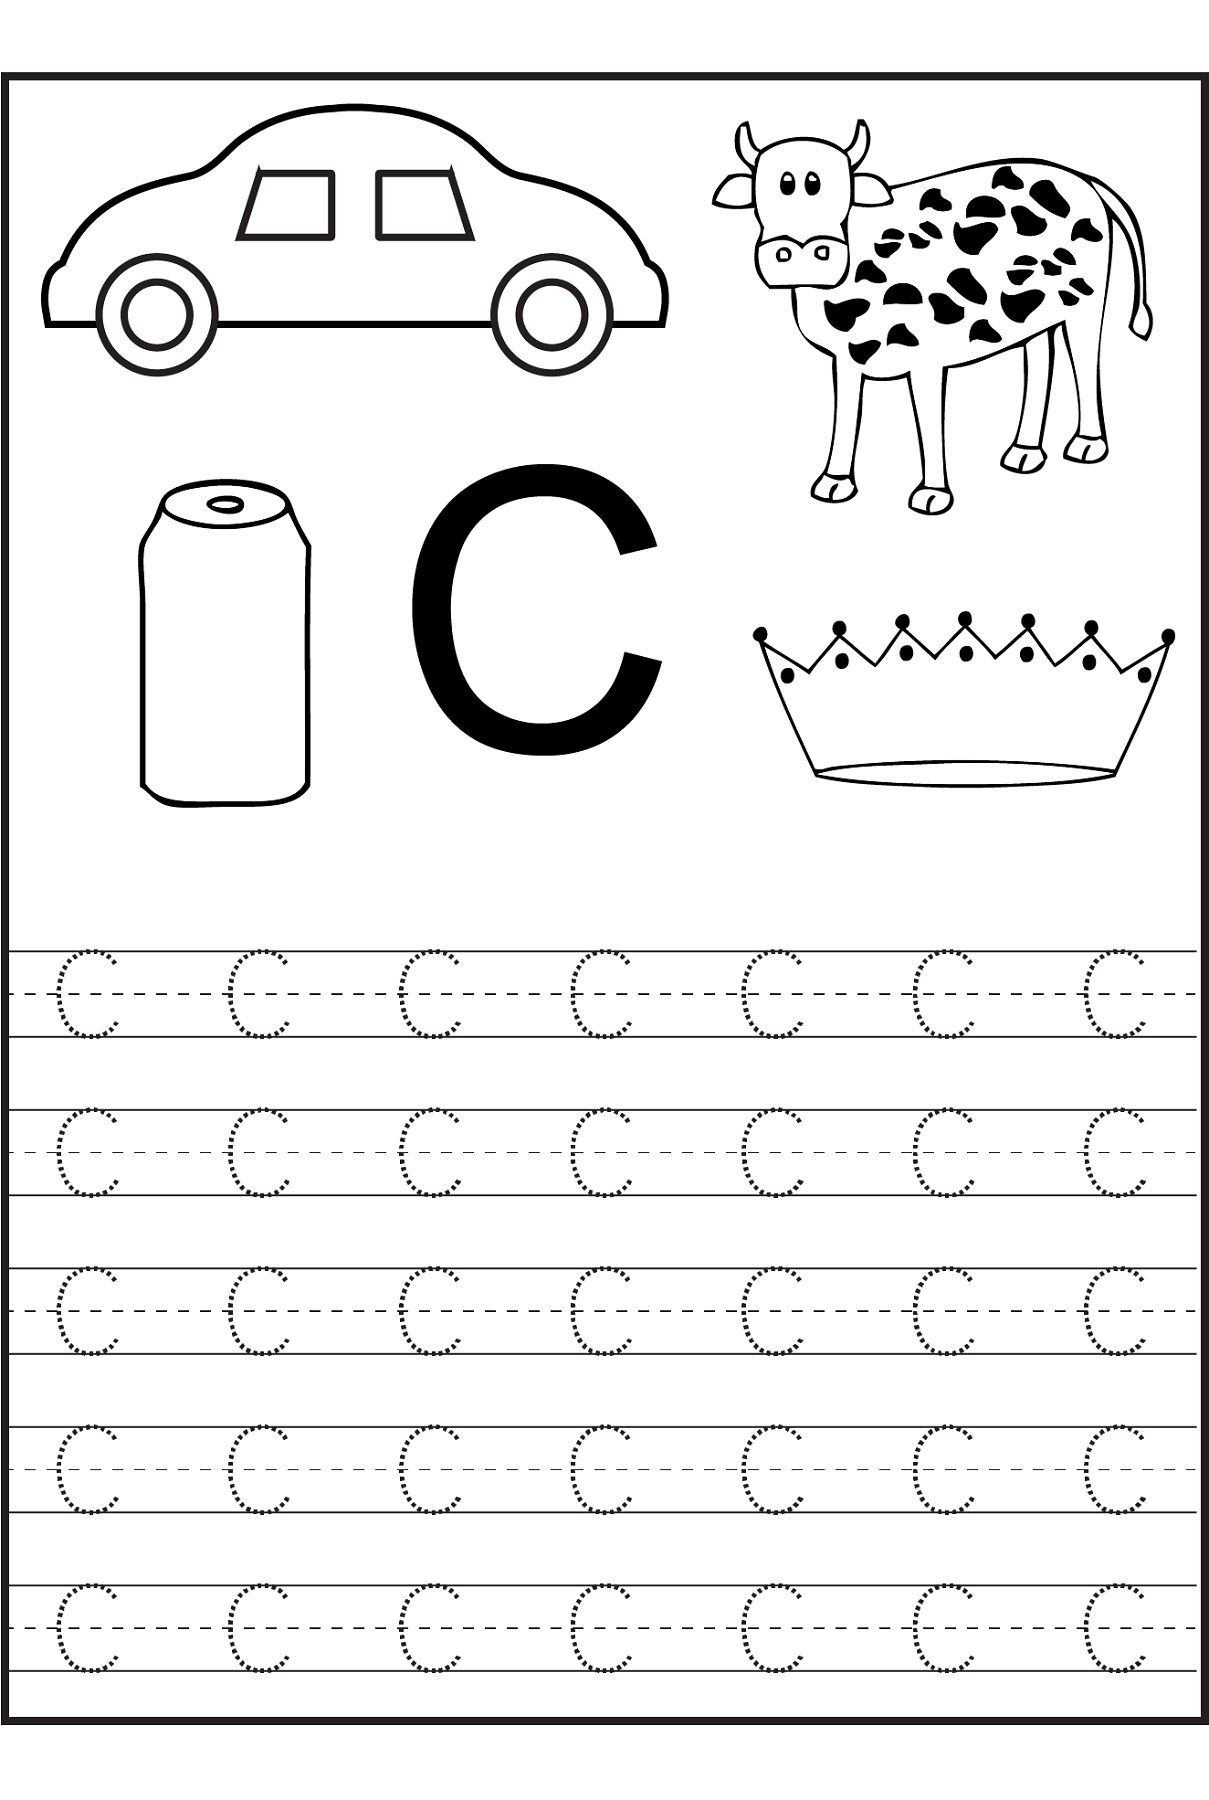 Trace The Letter C Worksheets | Learning Worksheets, Free with regard to Letter C Worksheets Printable